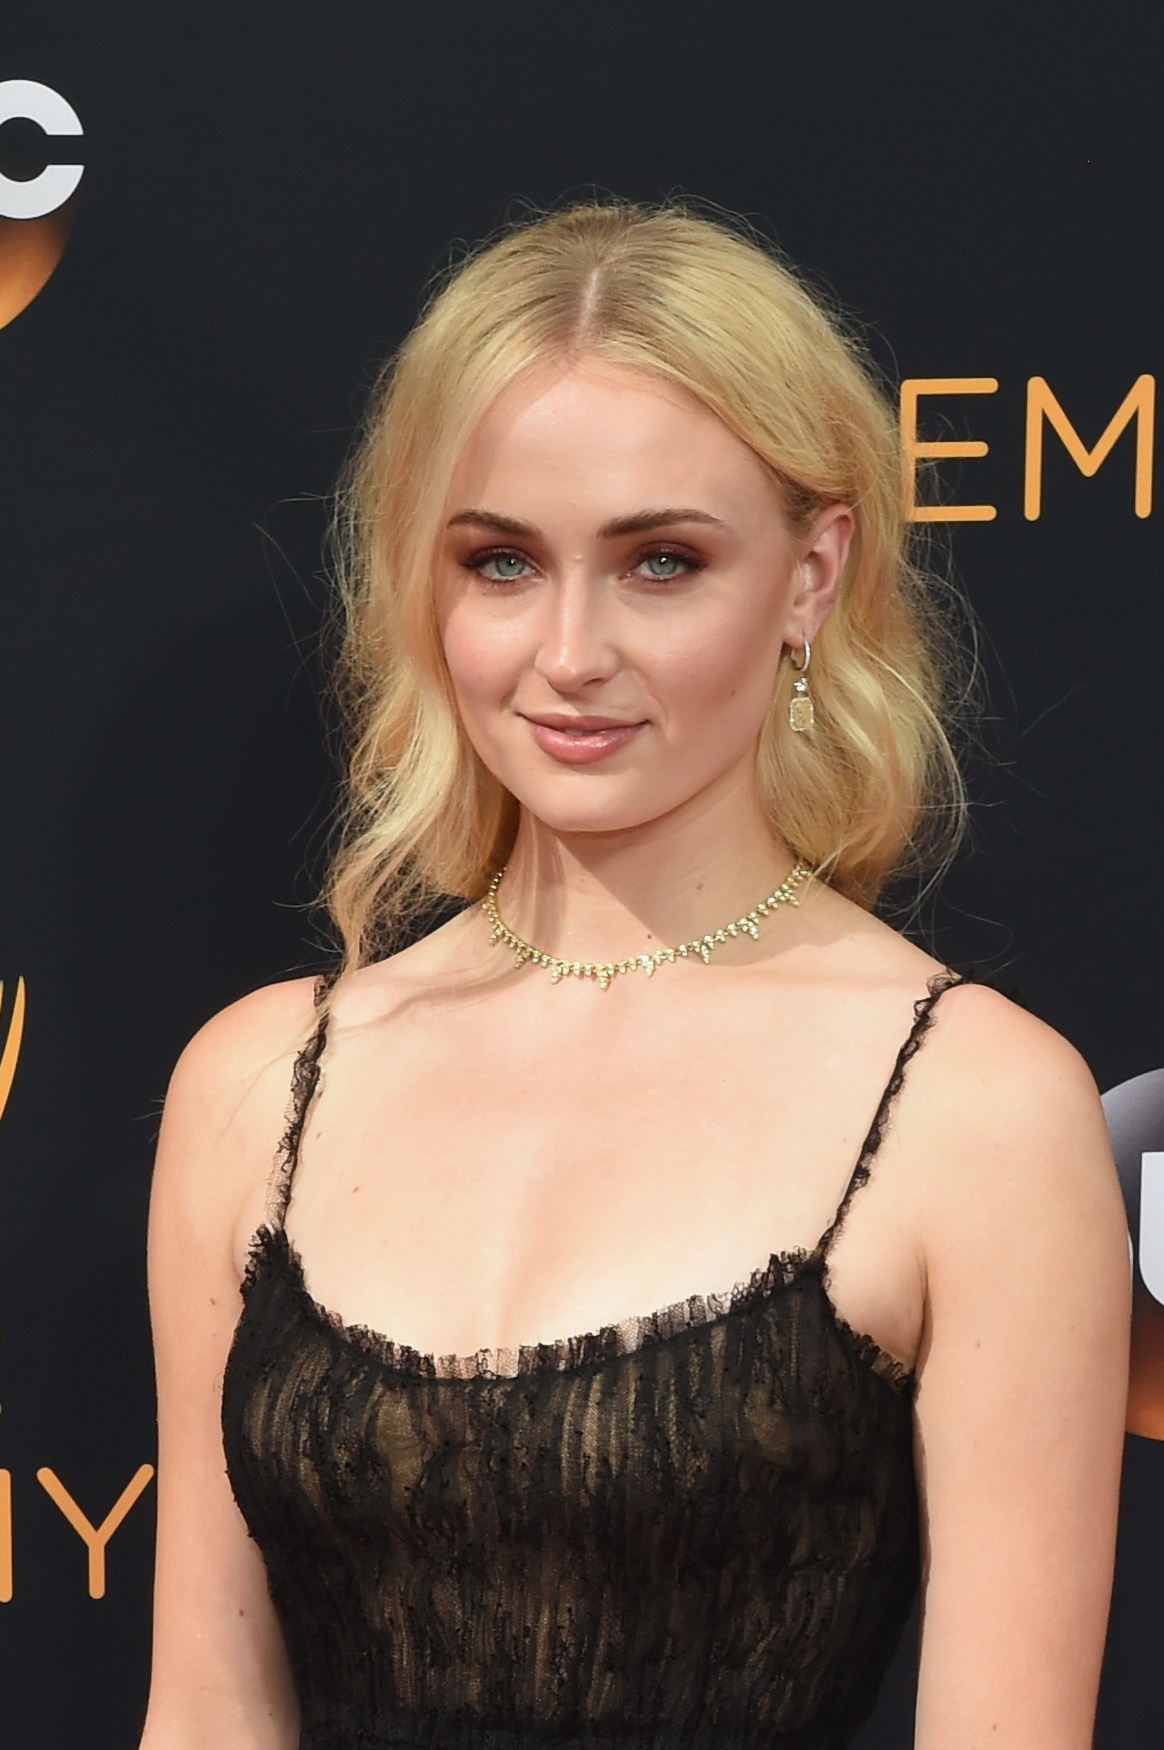 Los Angeles Ca September 18 Actress Sophie Turner